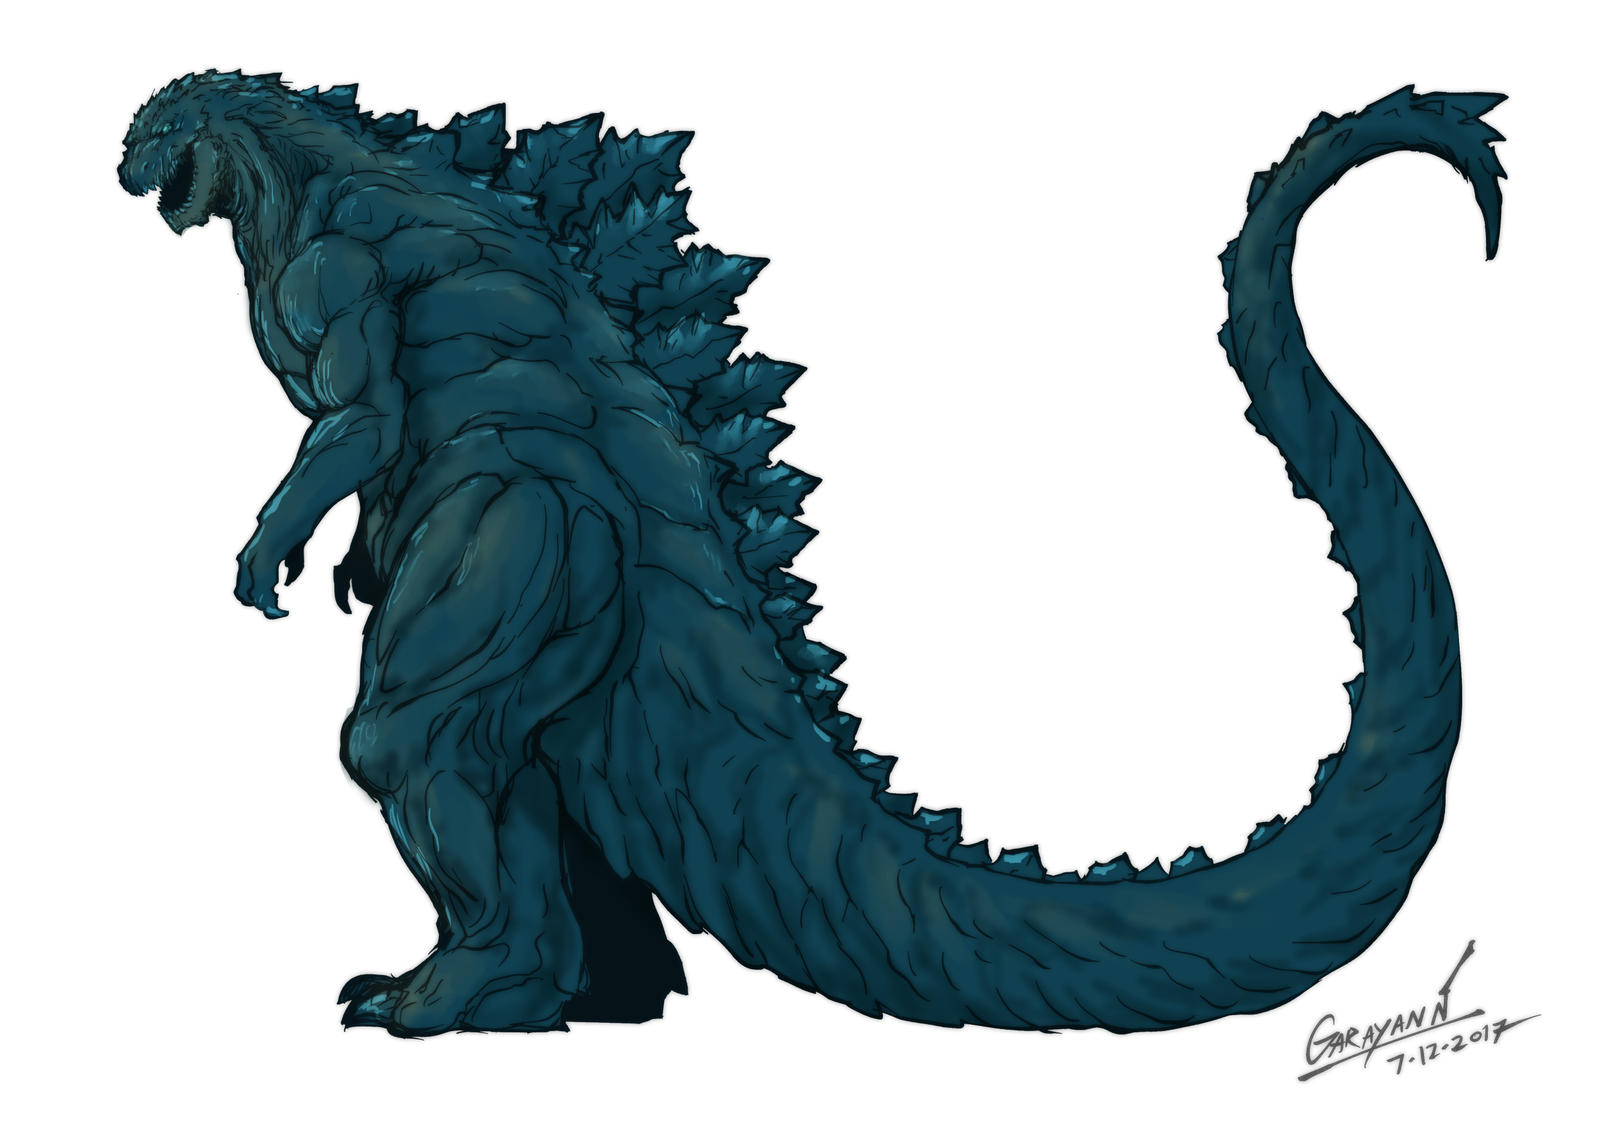 Godzilla 2017 [Fanart] by GARAYANN on DeviantArt